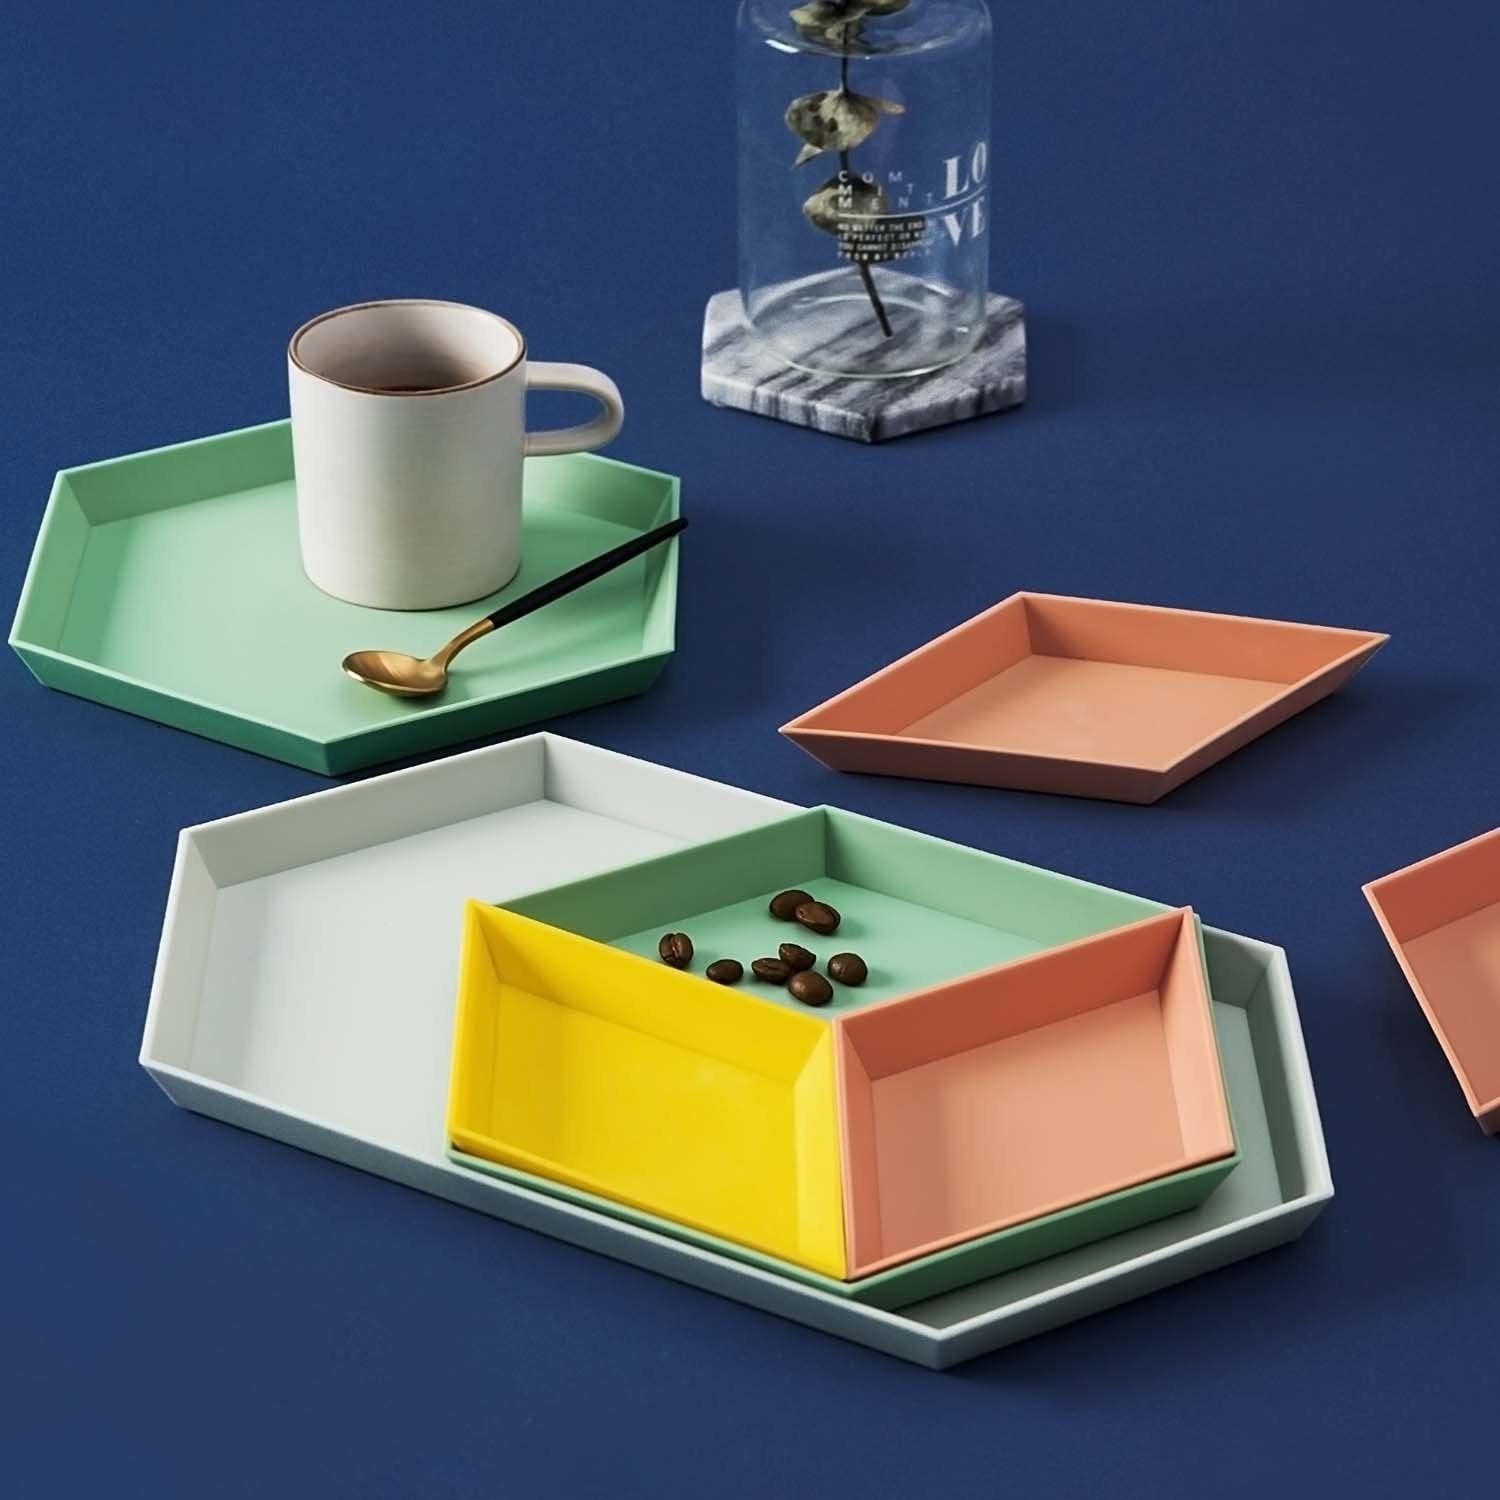 The pastel colored trays stacked and holding a mug of coffee